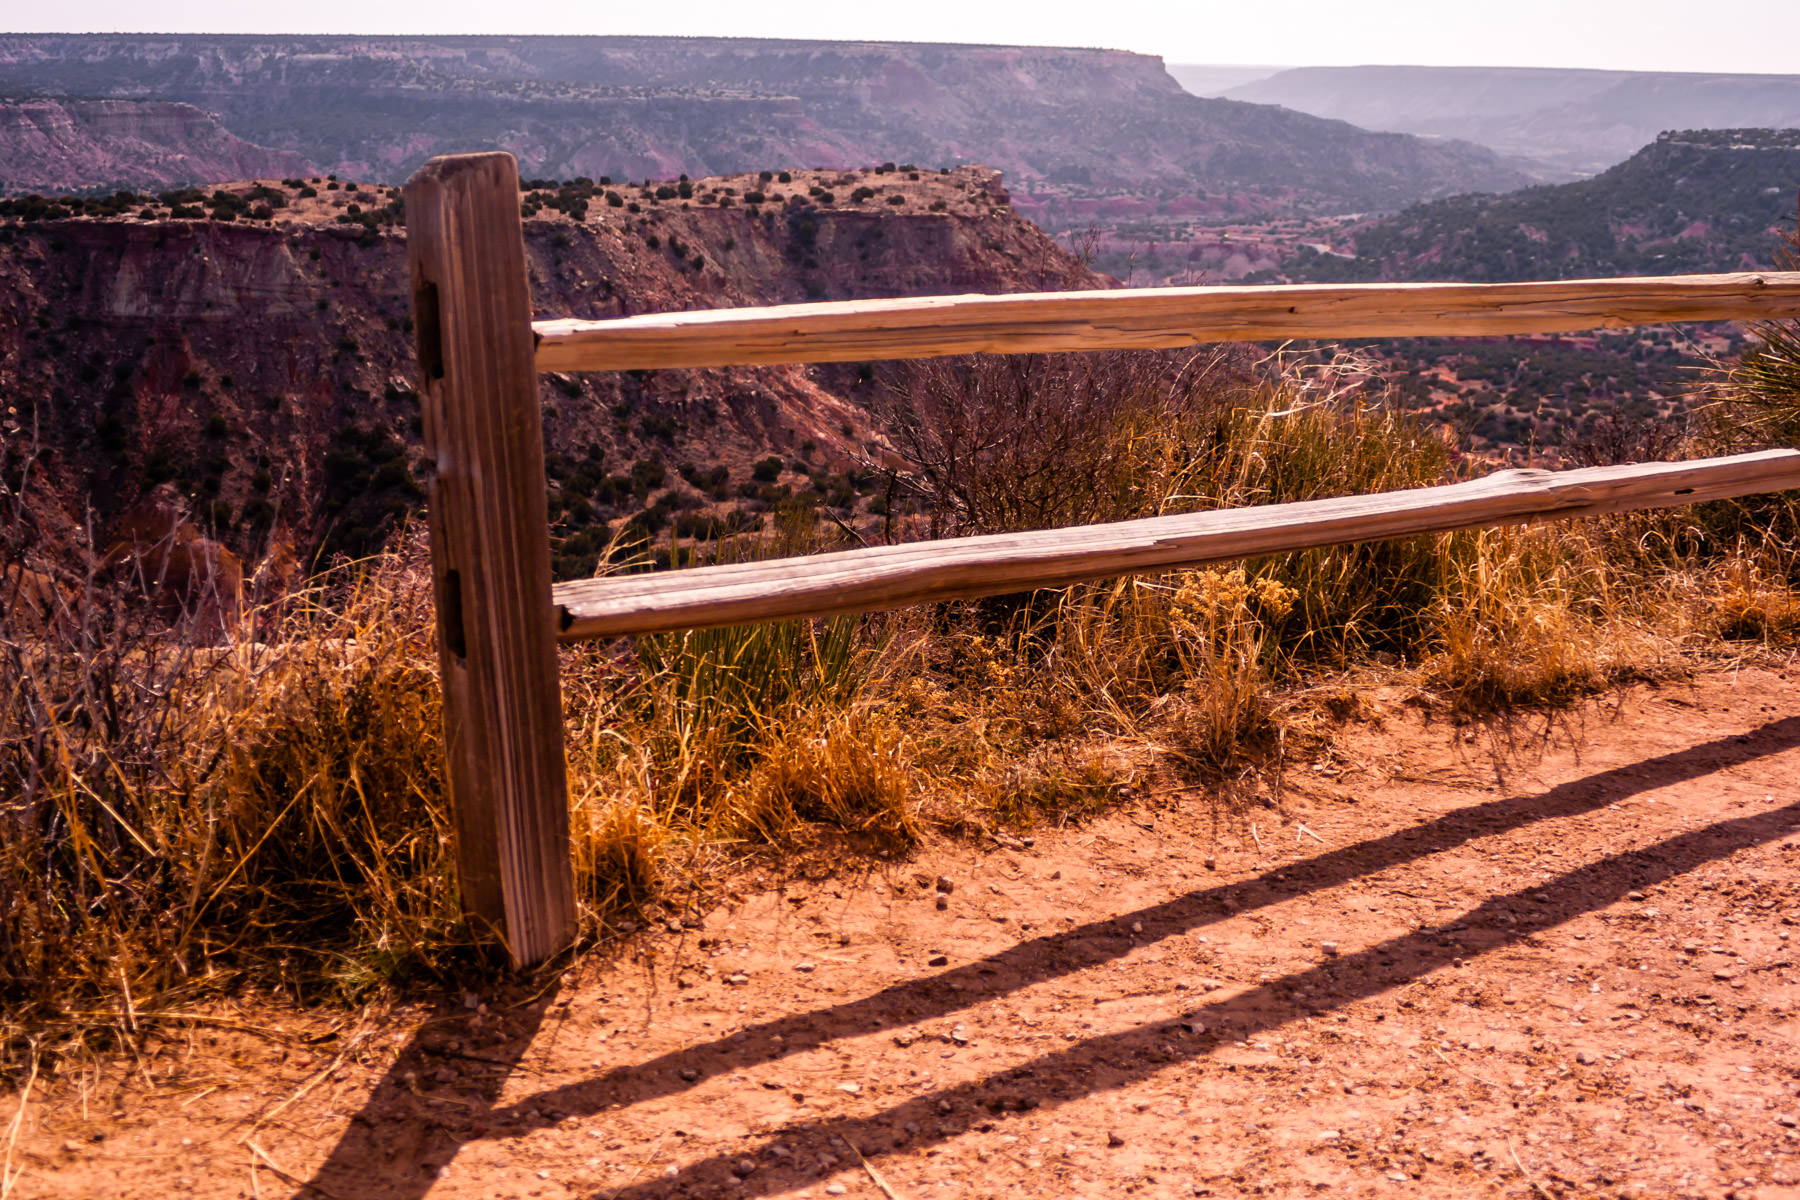 A fence at Palo Duro Canyon State Park, Texas.